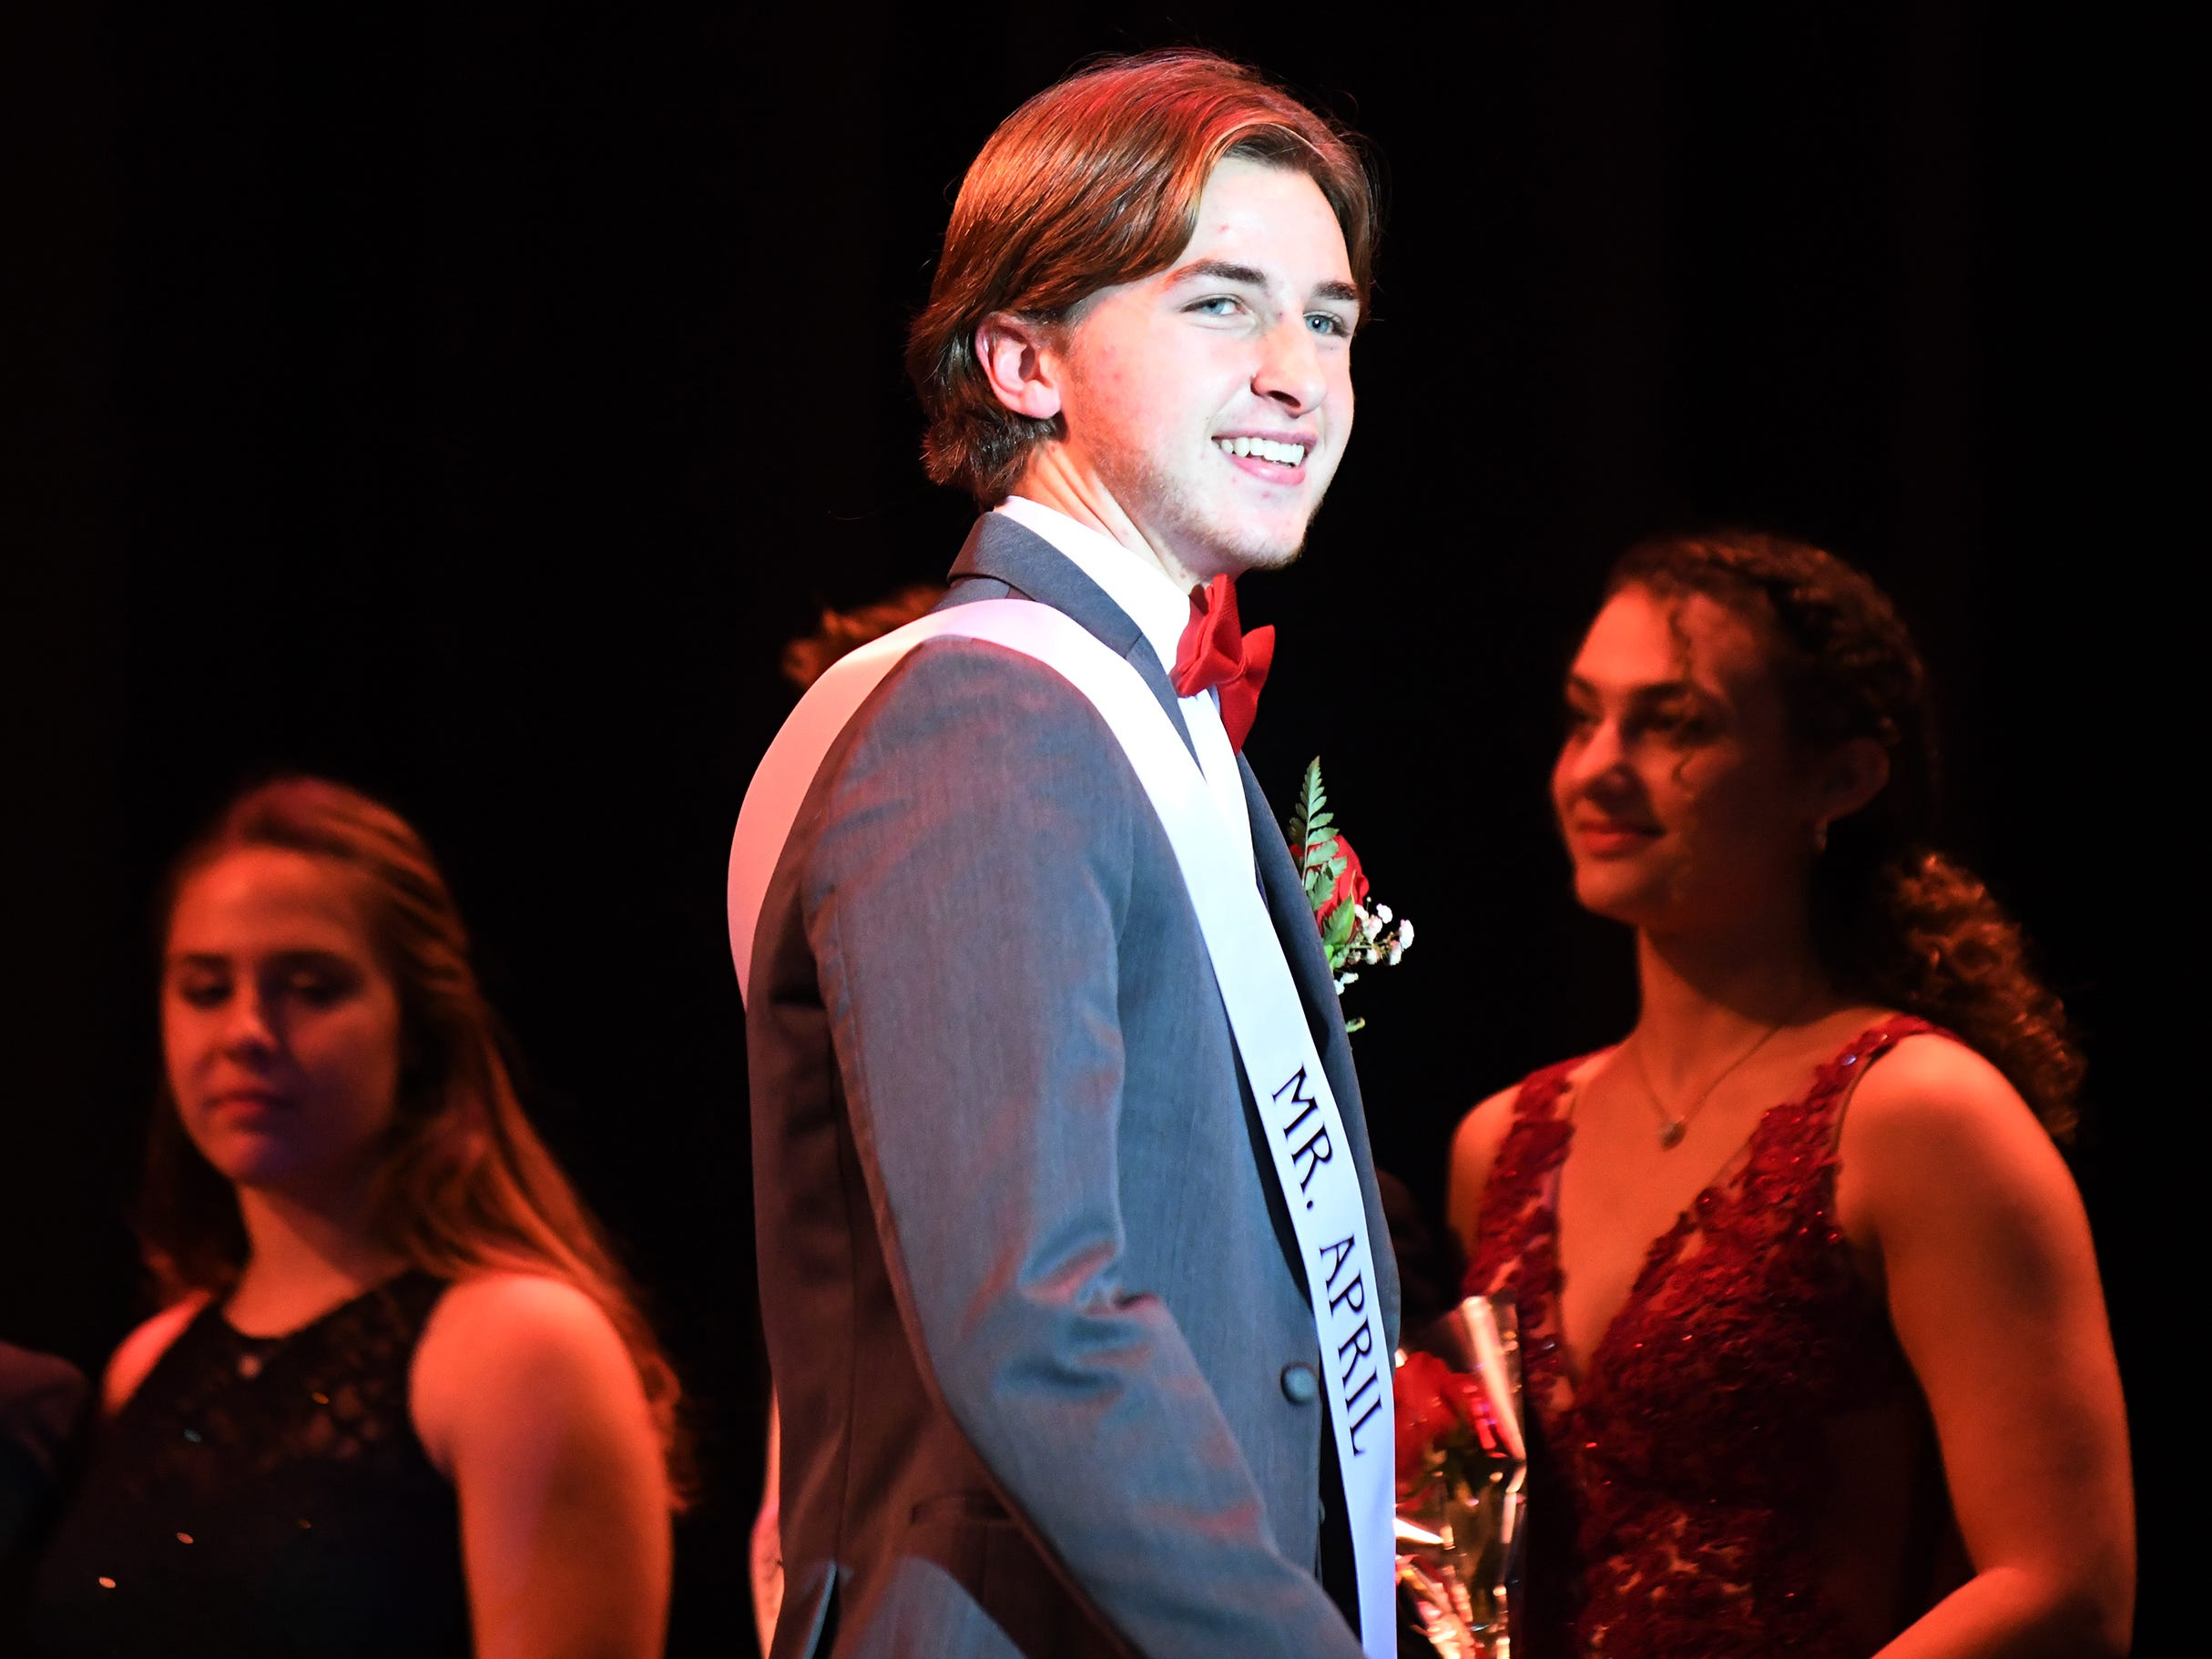 Lucas Portadin shows off his formal wear during Mr. Vineland 2019 at Vineland High School on Thursday, January 10.